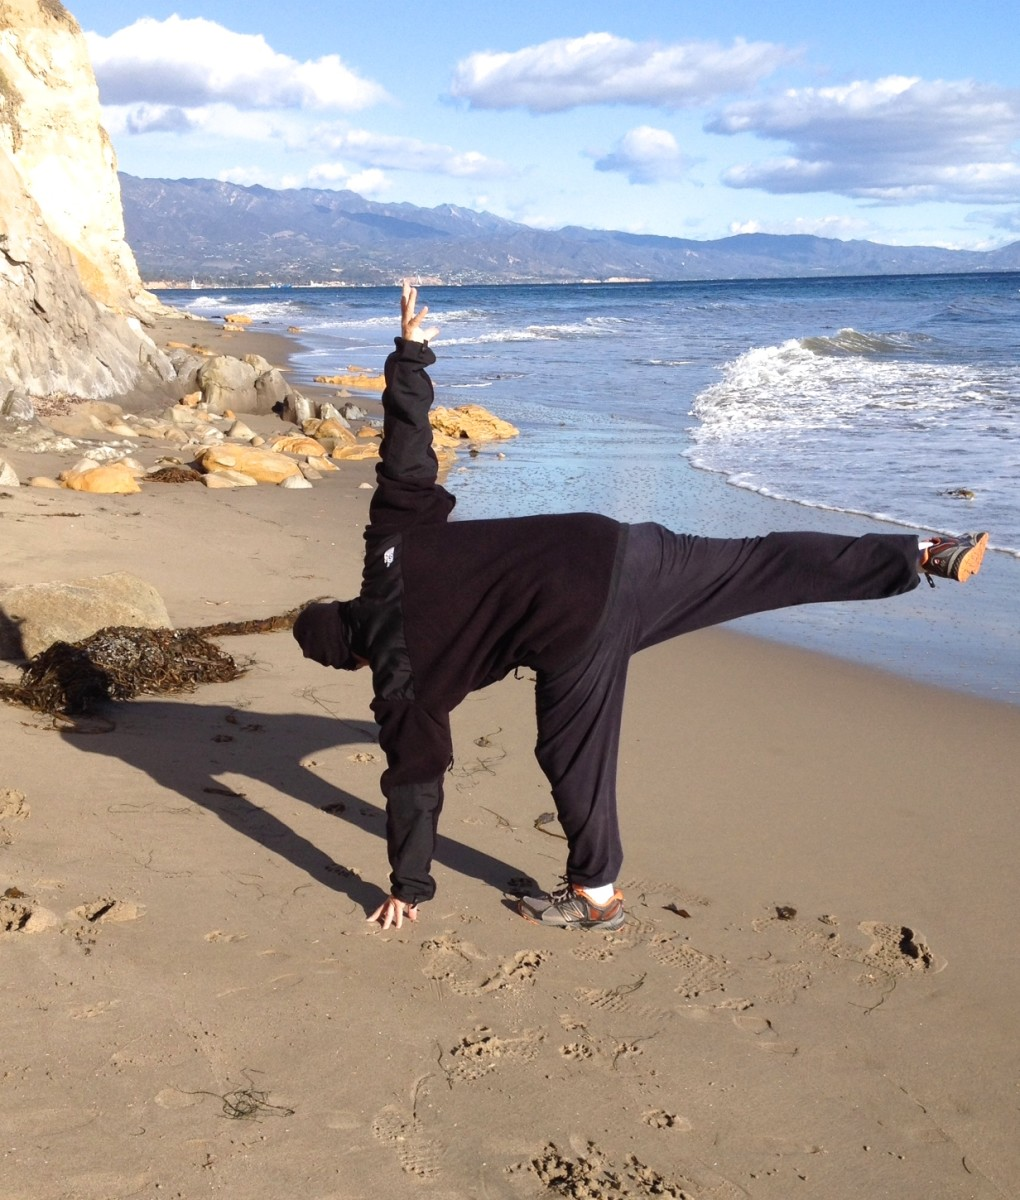 The big toe helps with balance and strength in the Half Moon Pose.